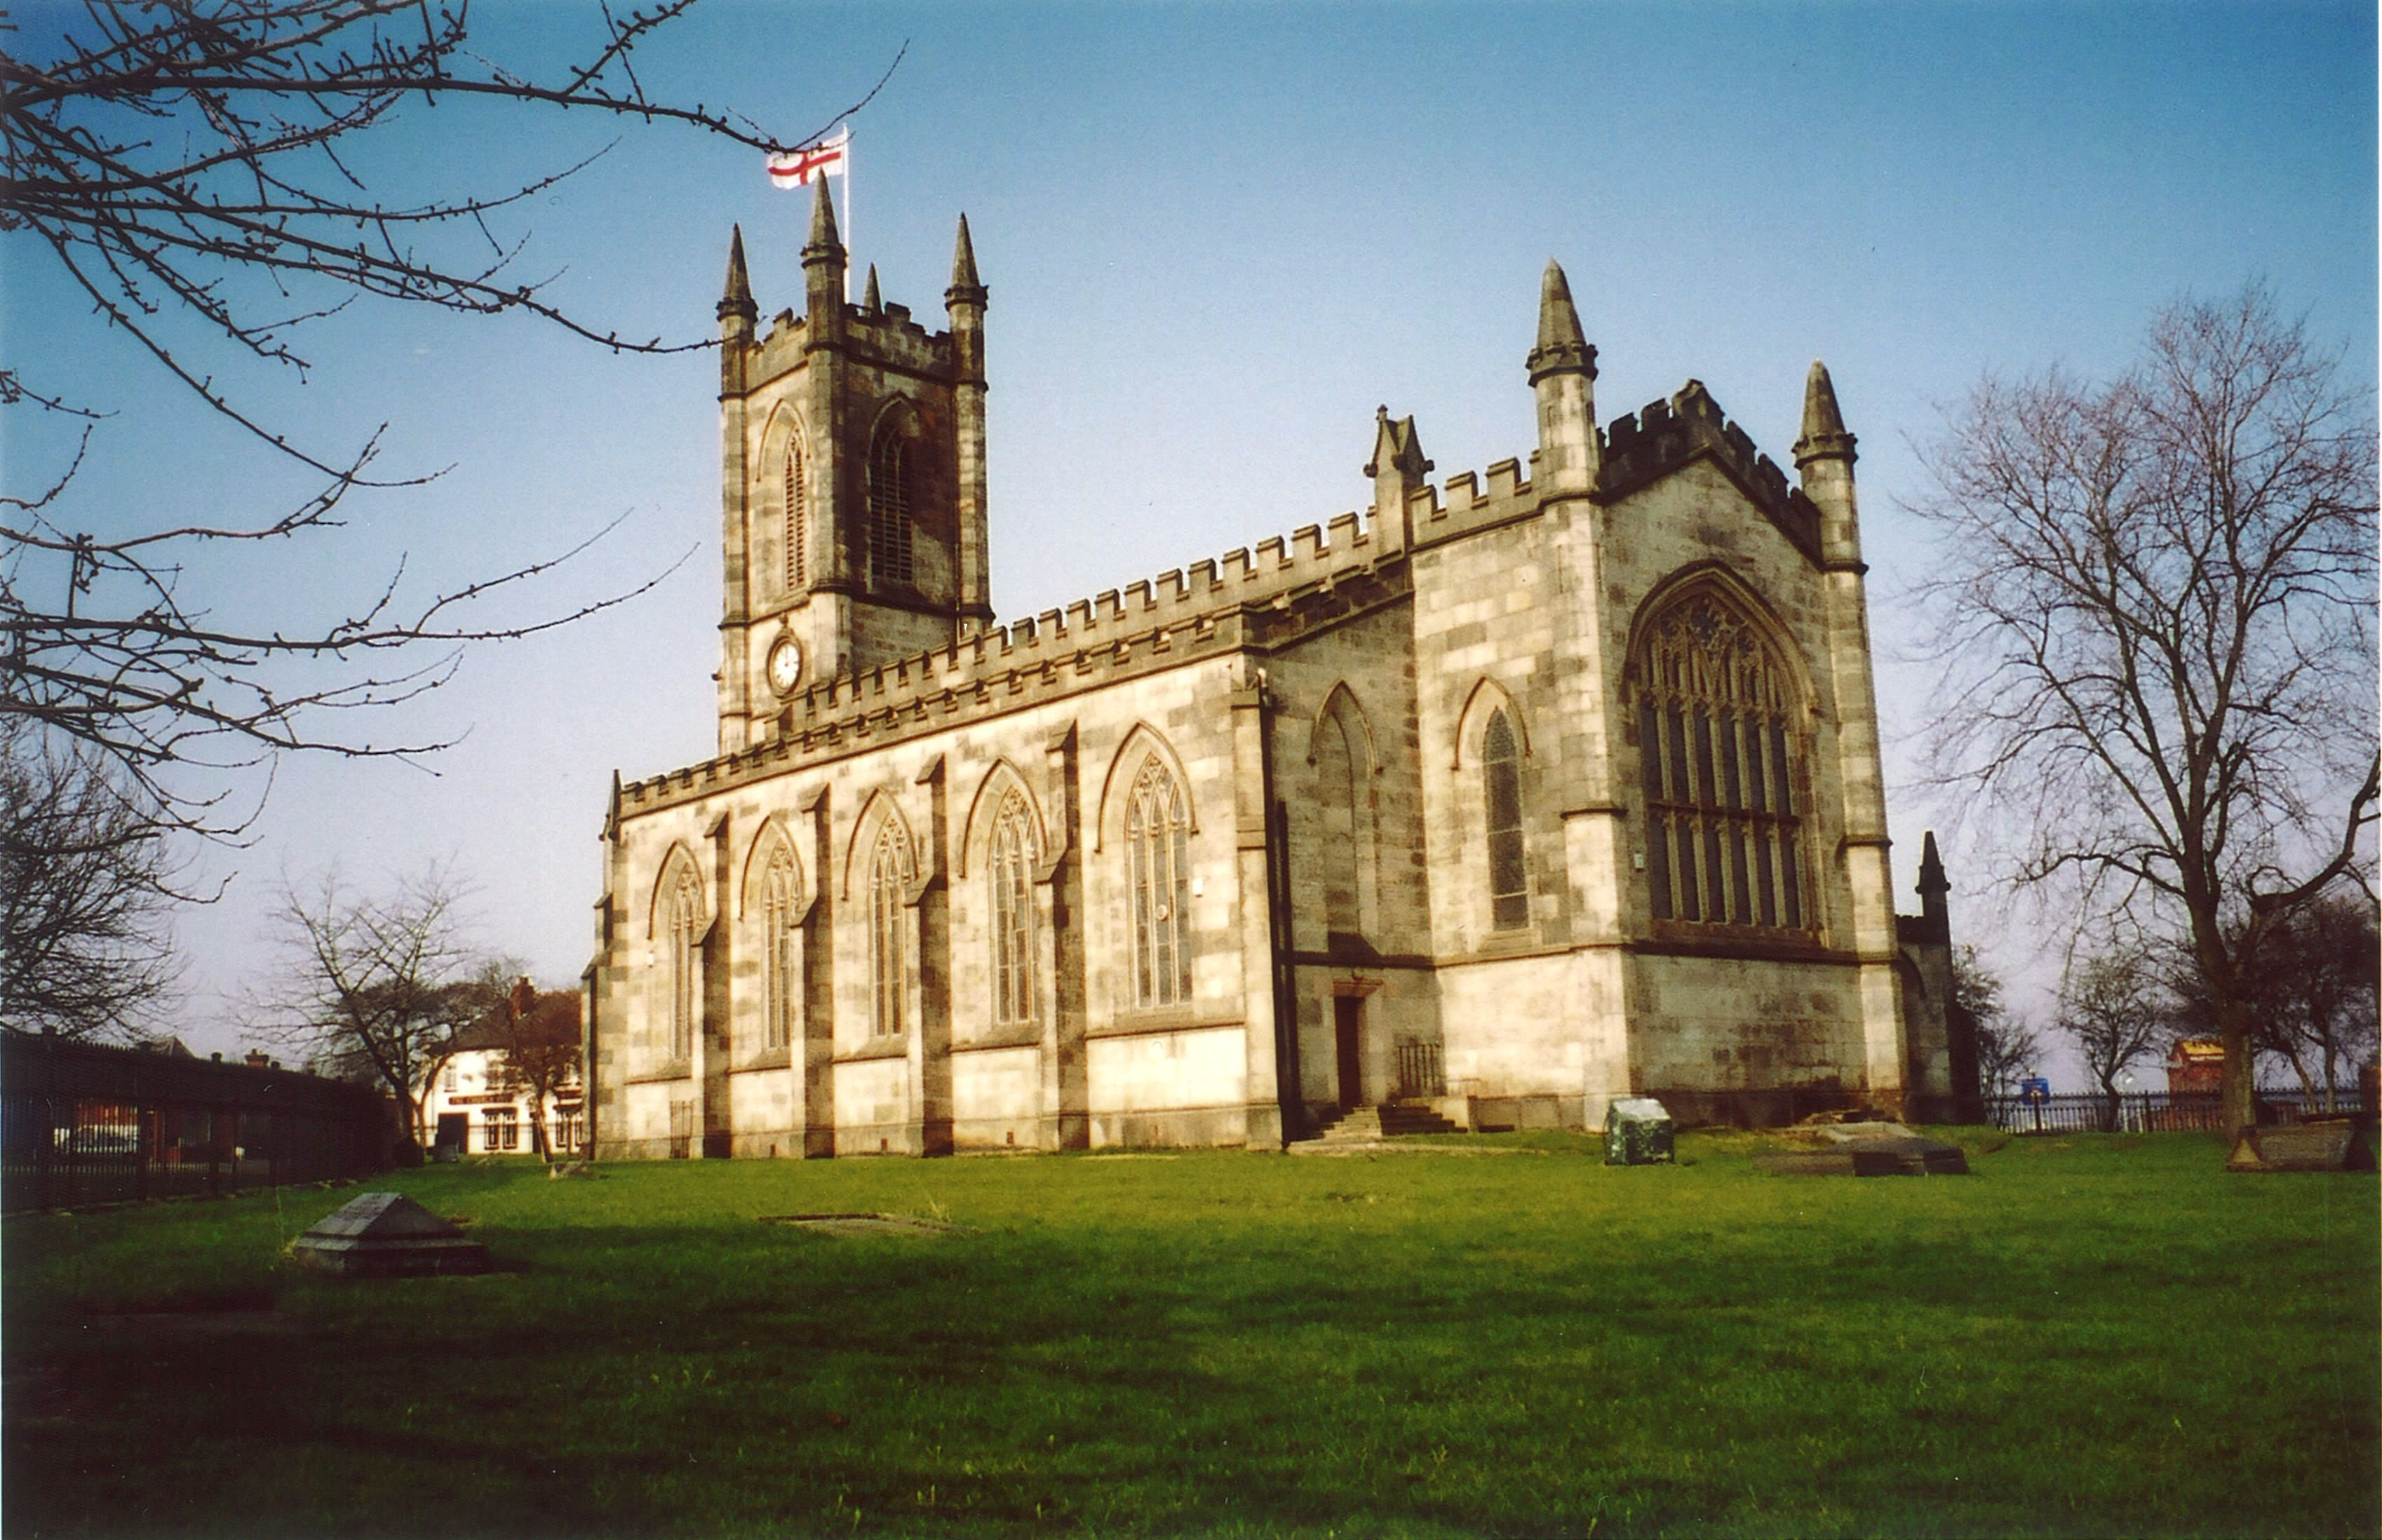 St. Thomas' Church in Salford, England where Jonathan Green and his wife Betsy are buried.